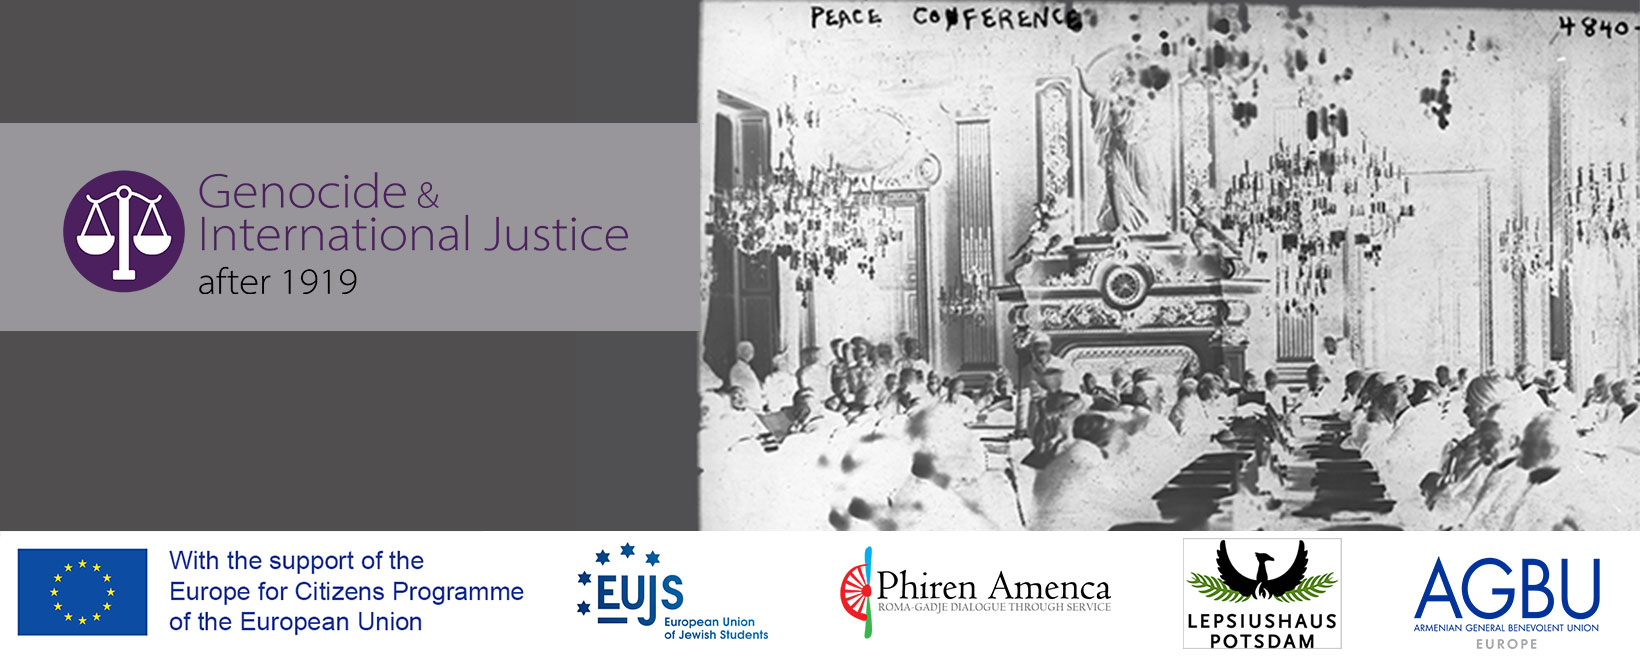 Ideas & their Consequences: Genocide and International Justice after 1919